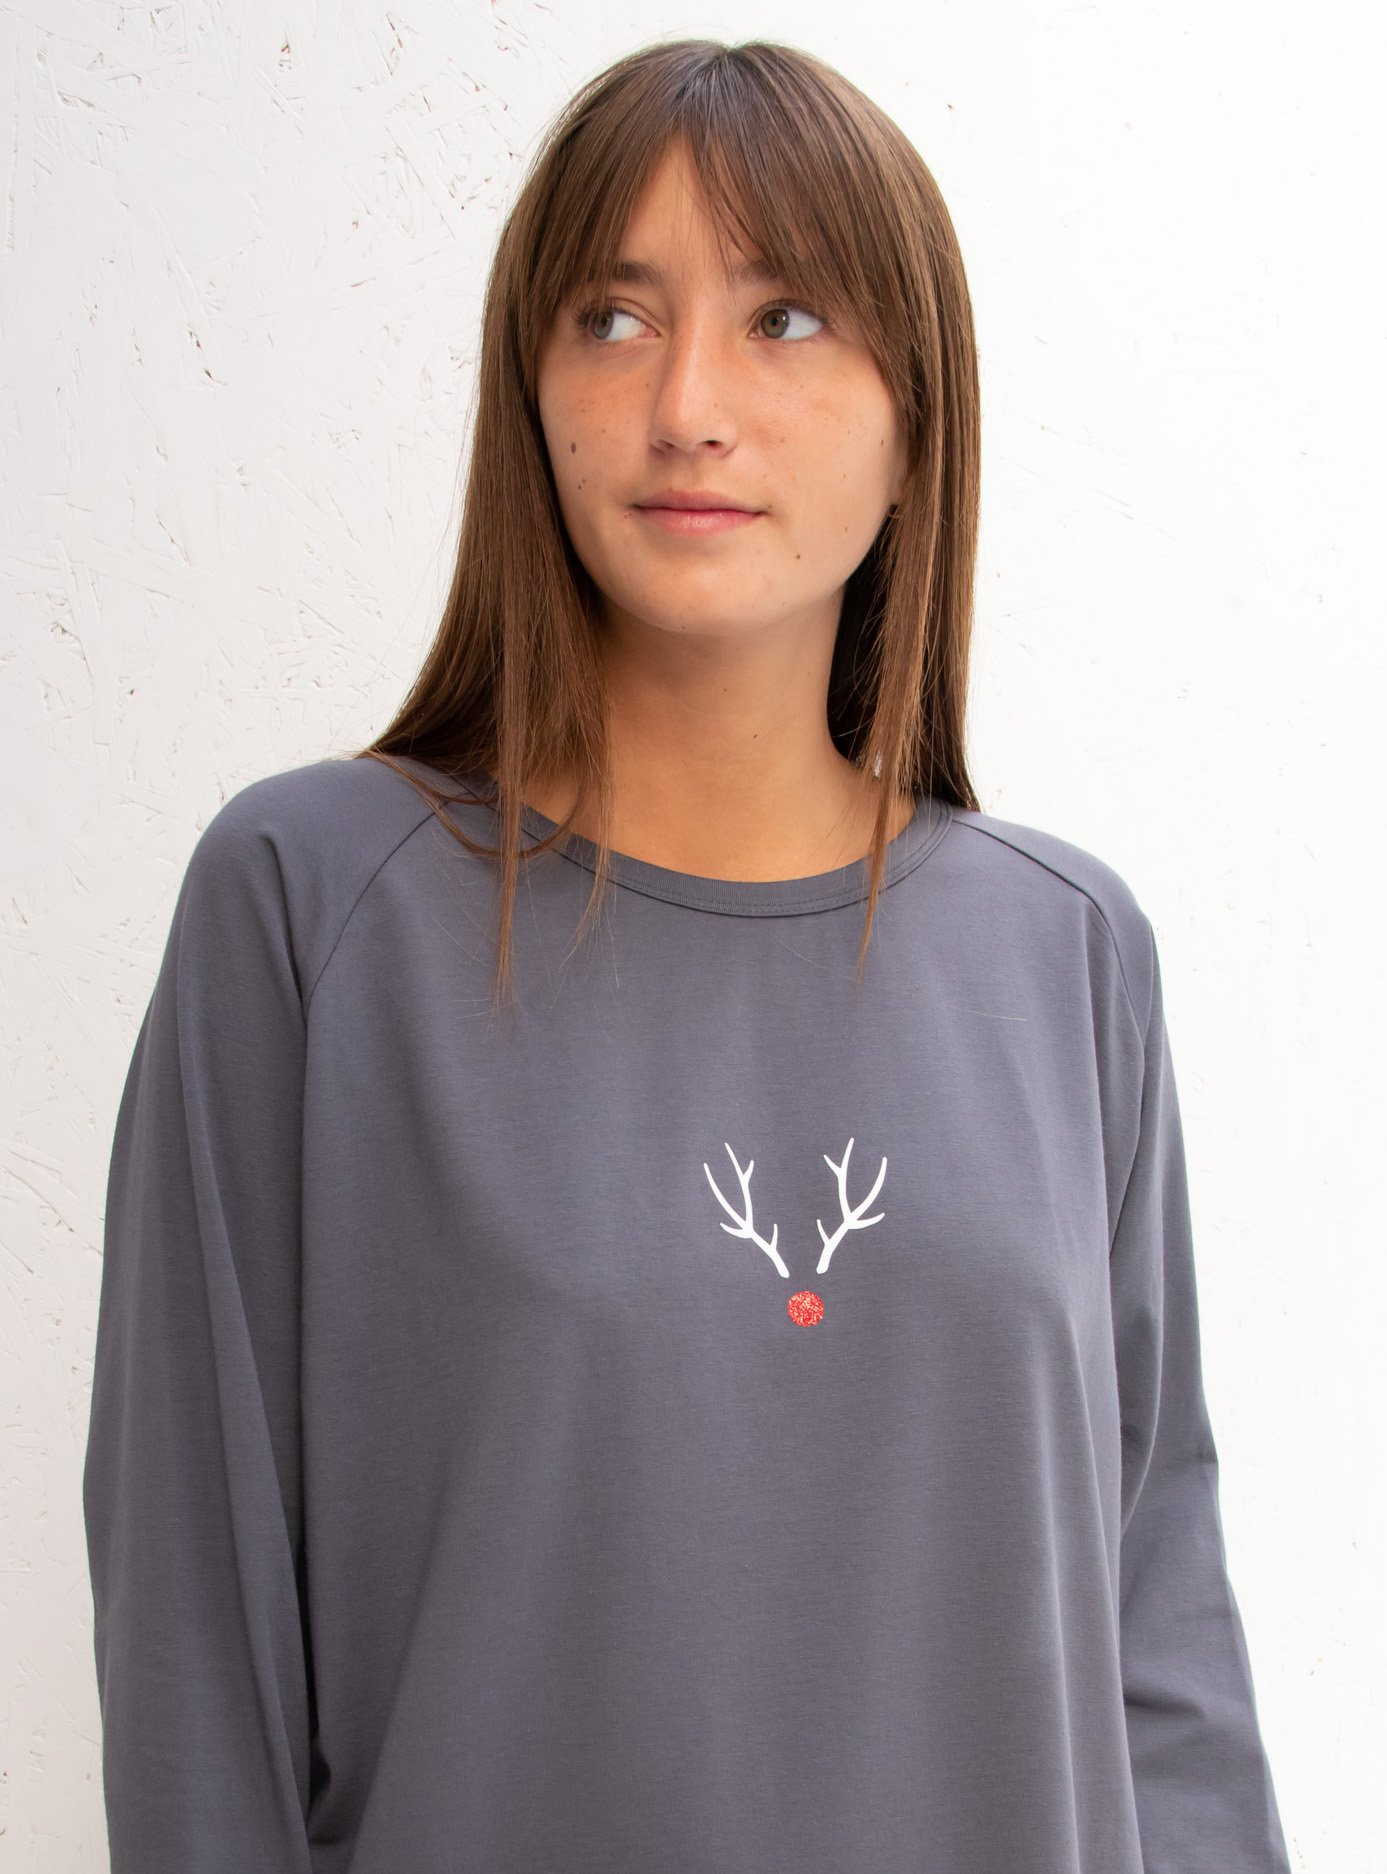 Chalk Reindeer Small Casual Top - Charcoal